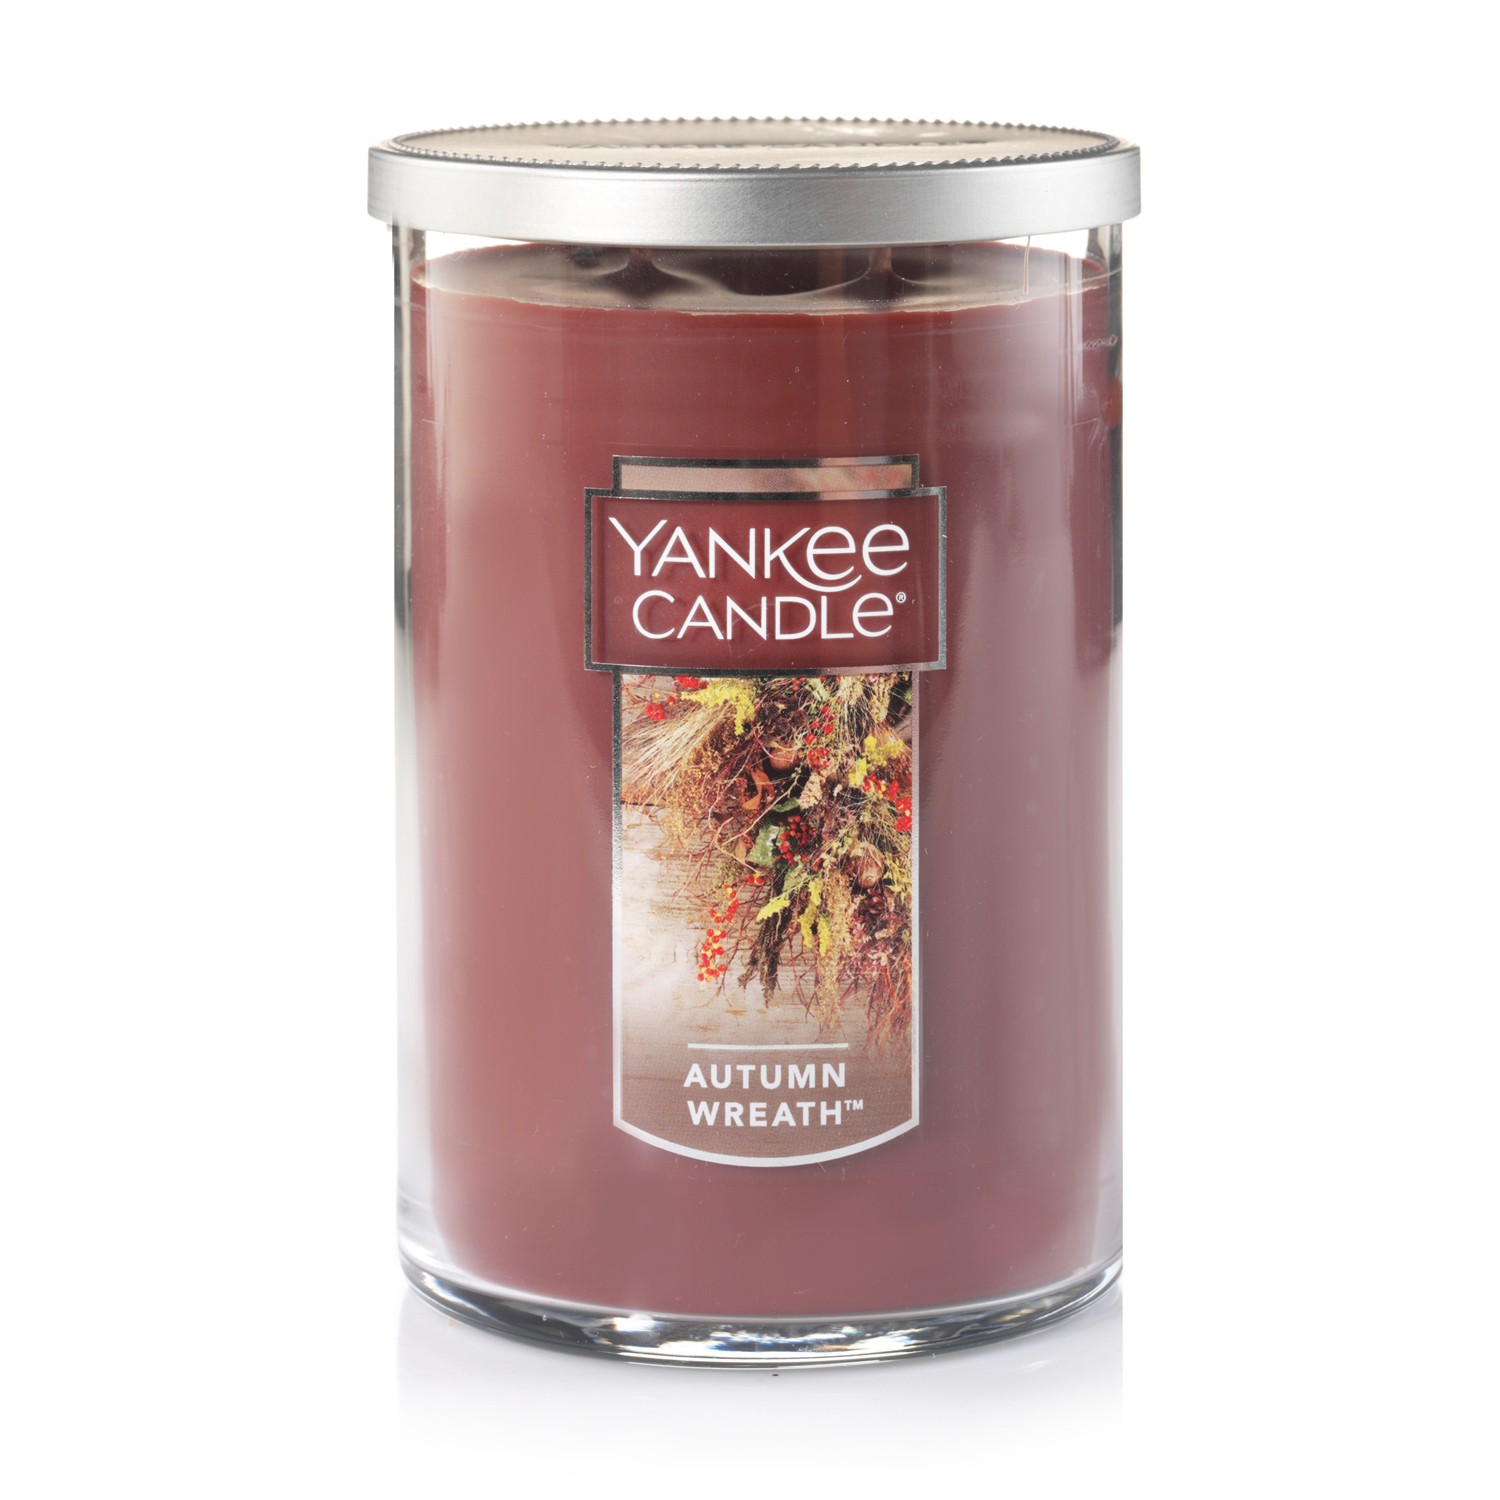 Yankee Candle Large 2-Wick Tumbler Scented Candle, Autumn Wreath